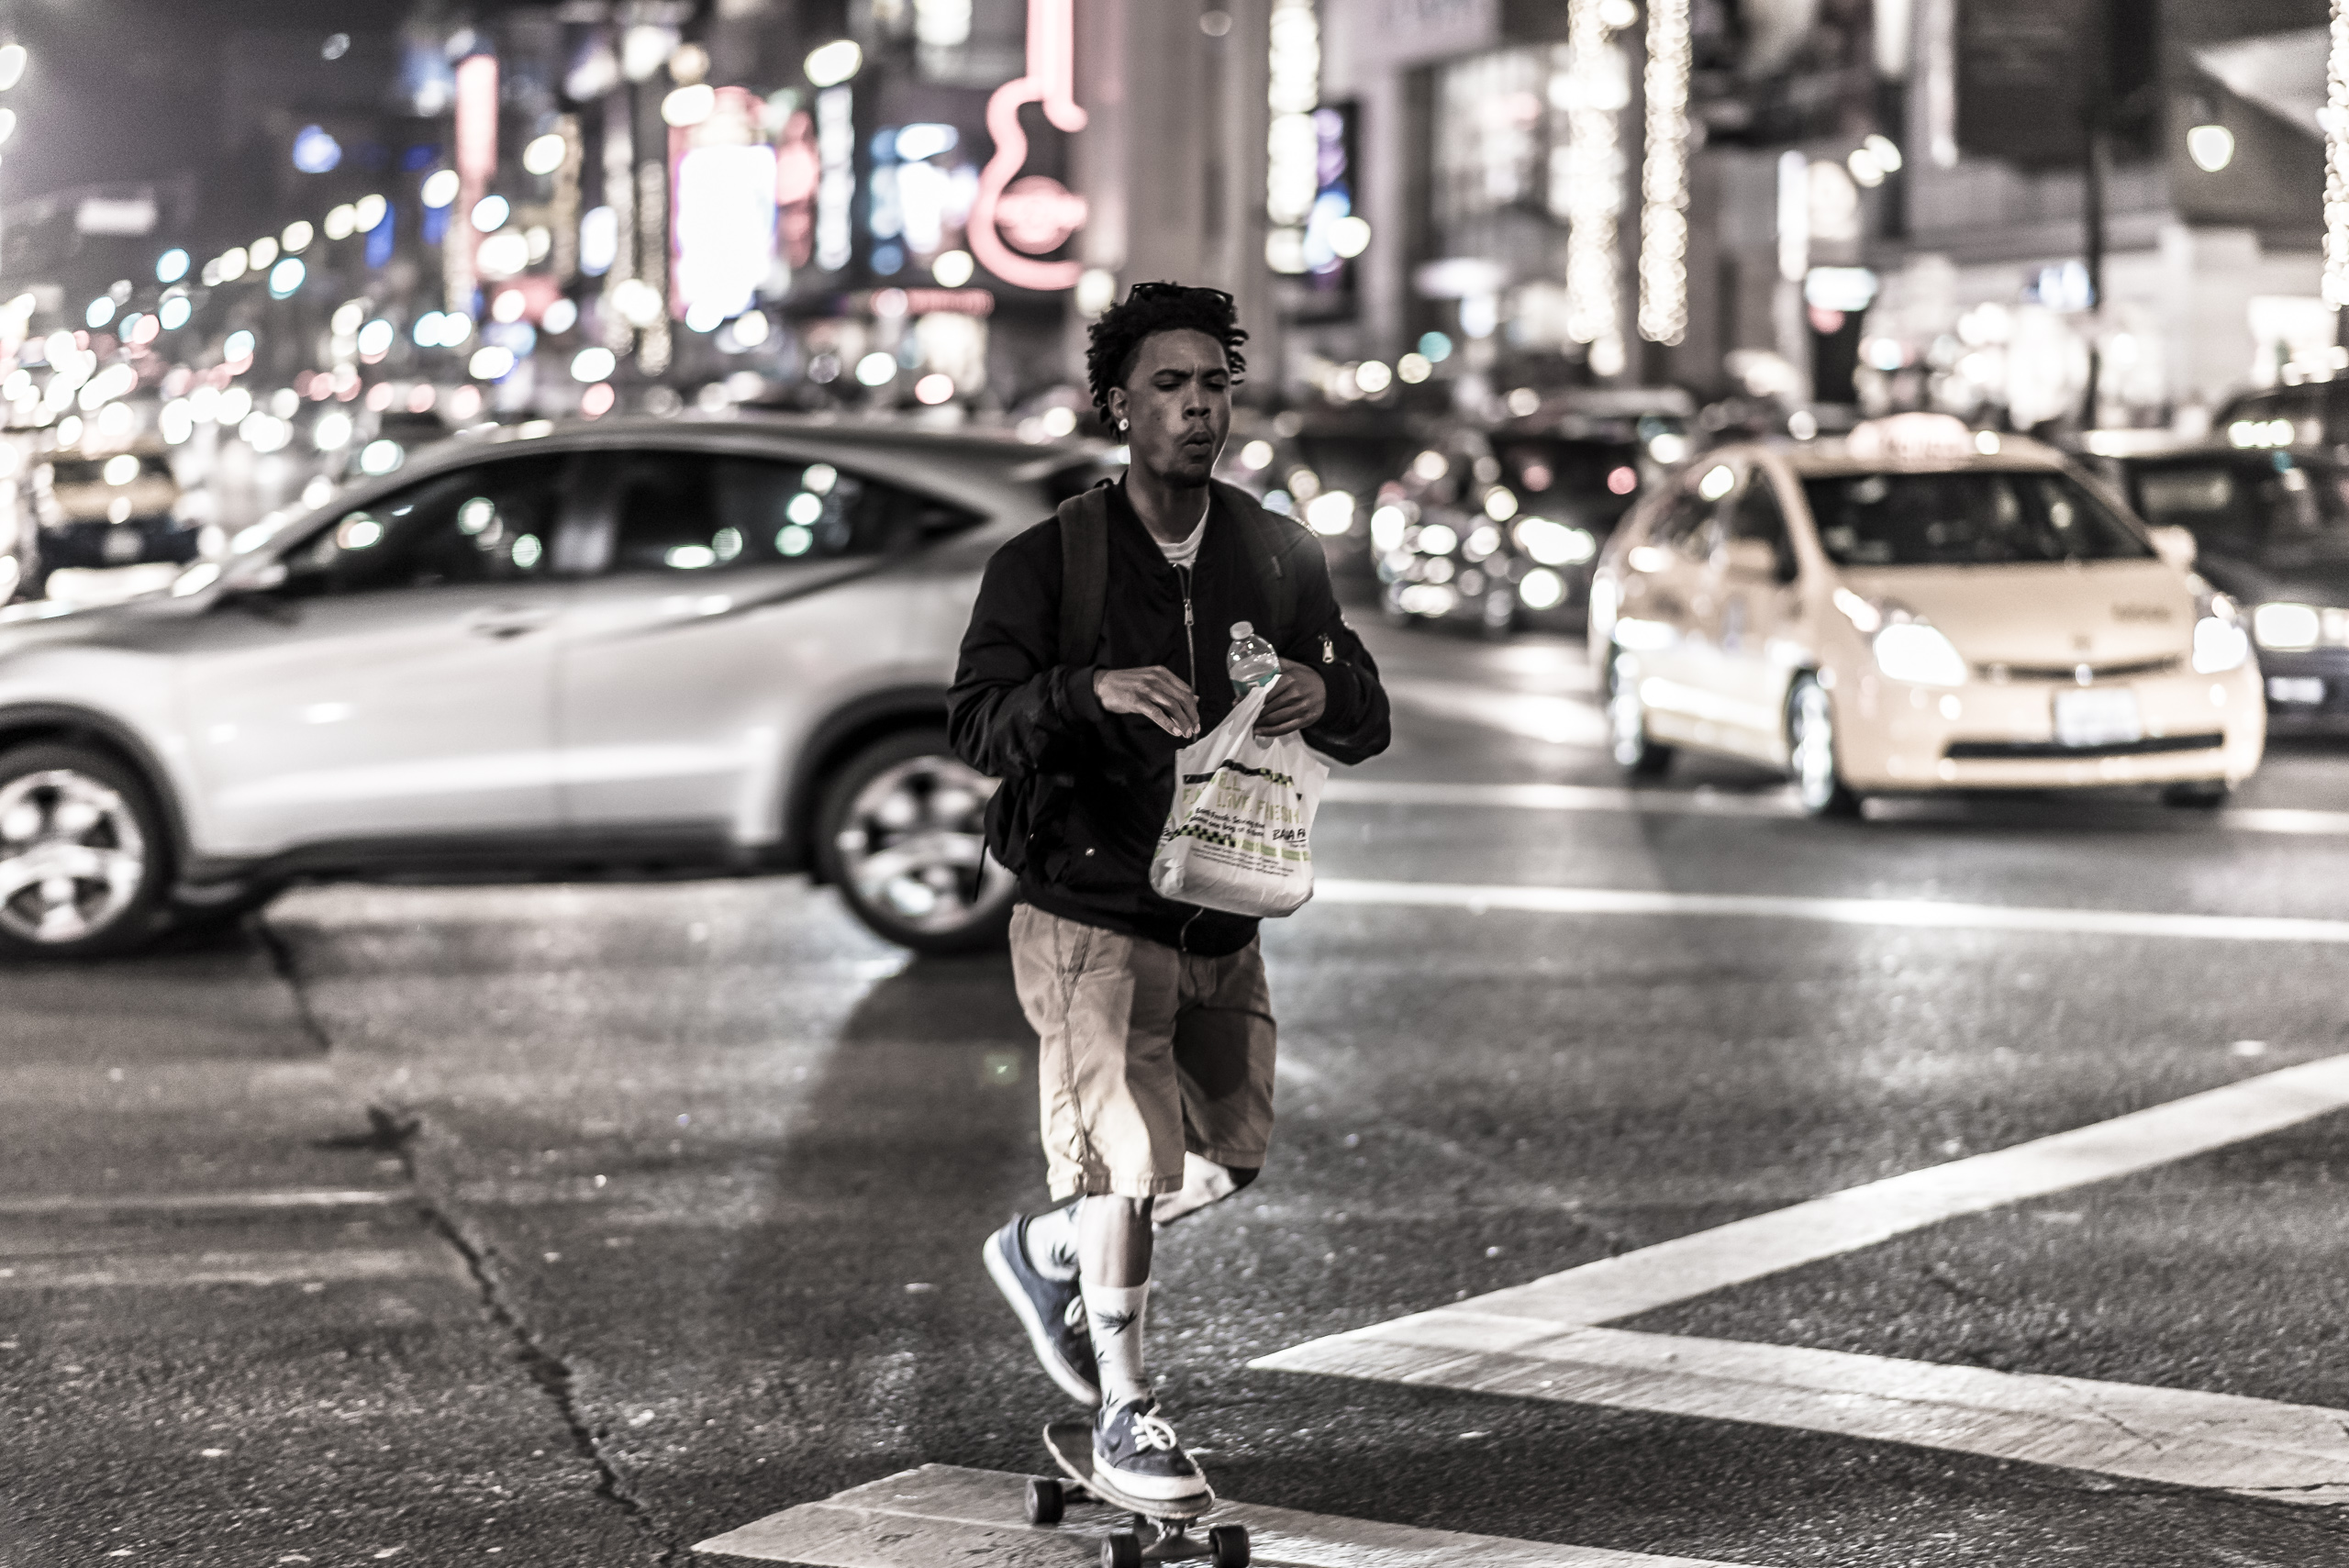 A guy on a skate board rides across the intersection of Hollywood and Highland as cars move through the intersection